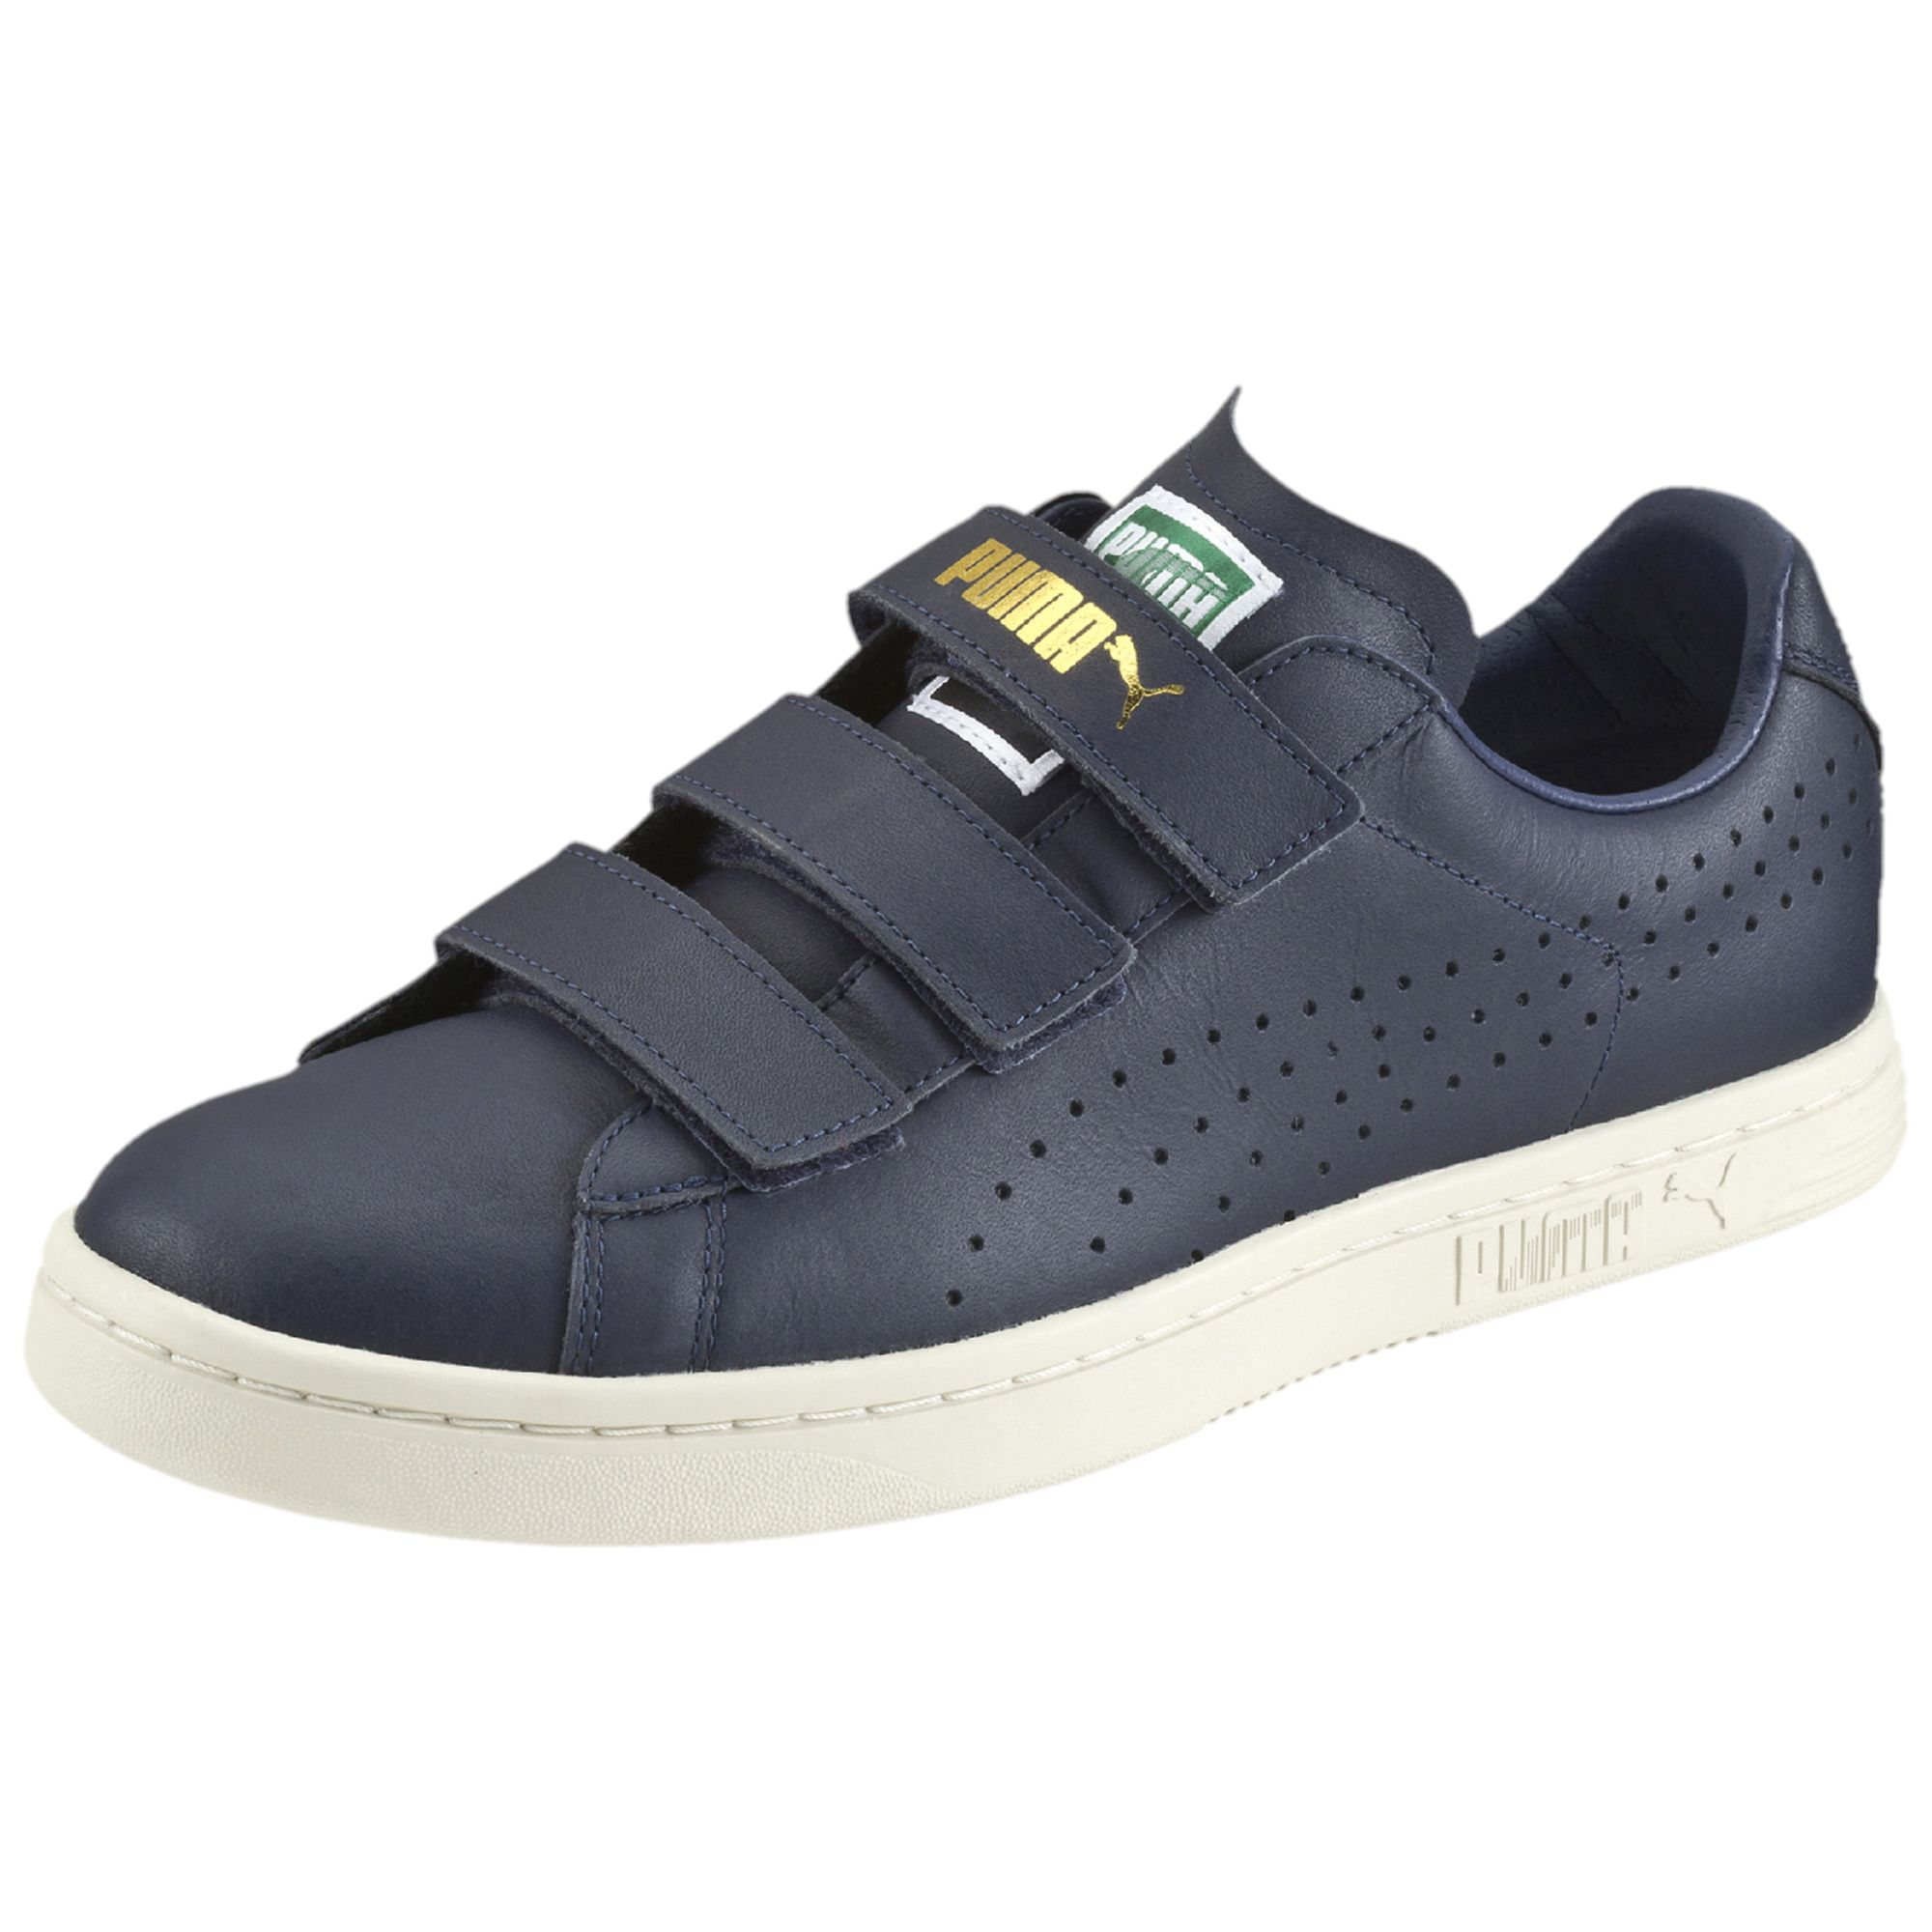 puma court star velcro sneaker schuhe tennis herren ebay. Black Bedroom Furniture Sets. Home Design Ideas